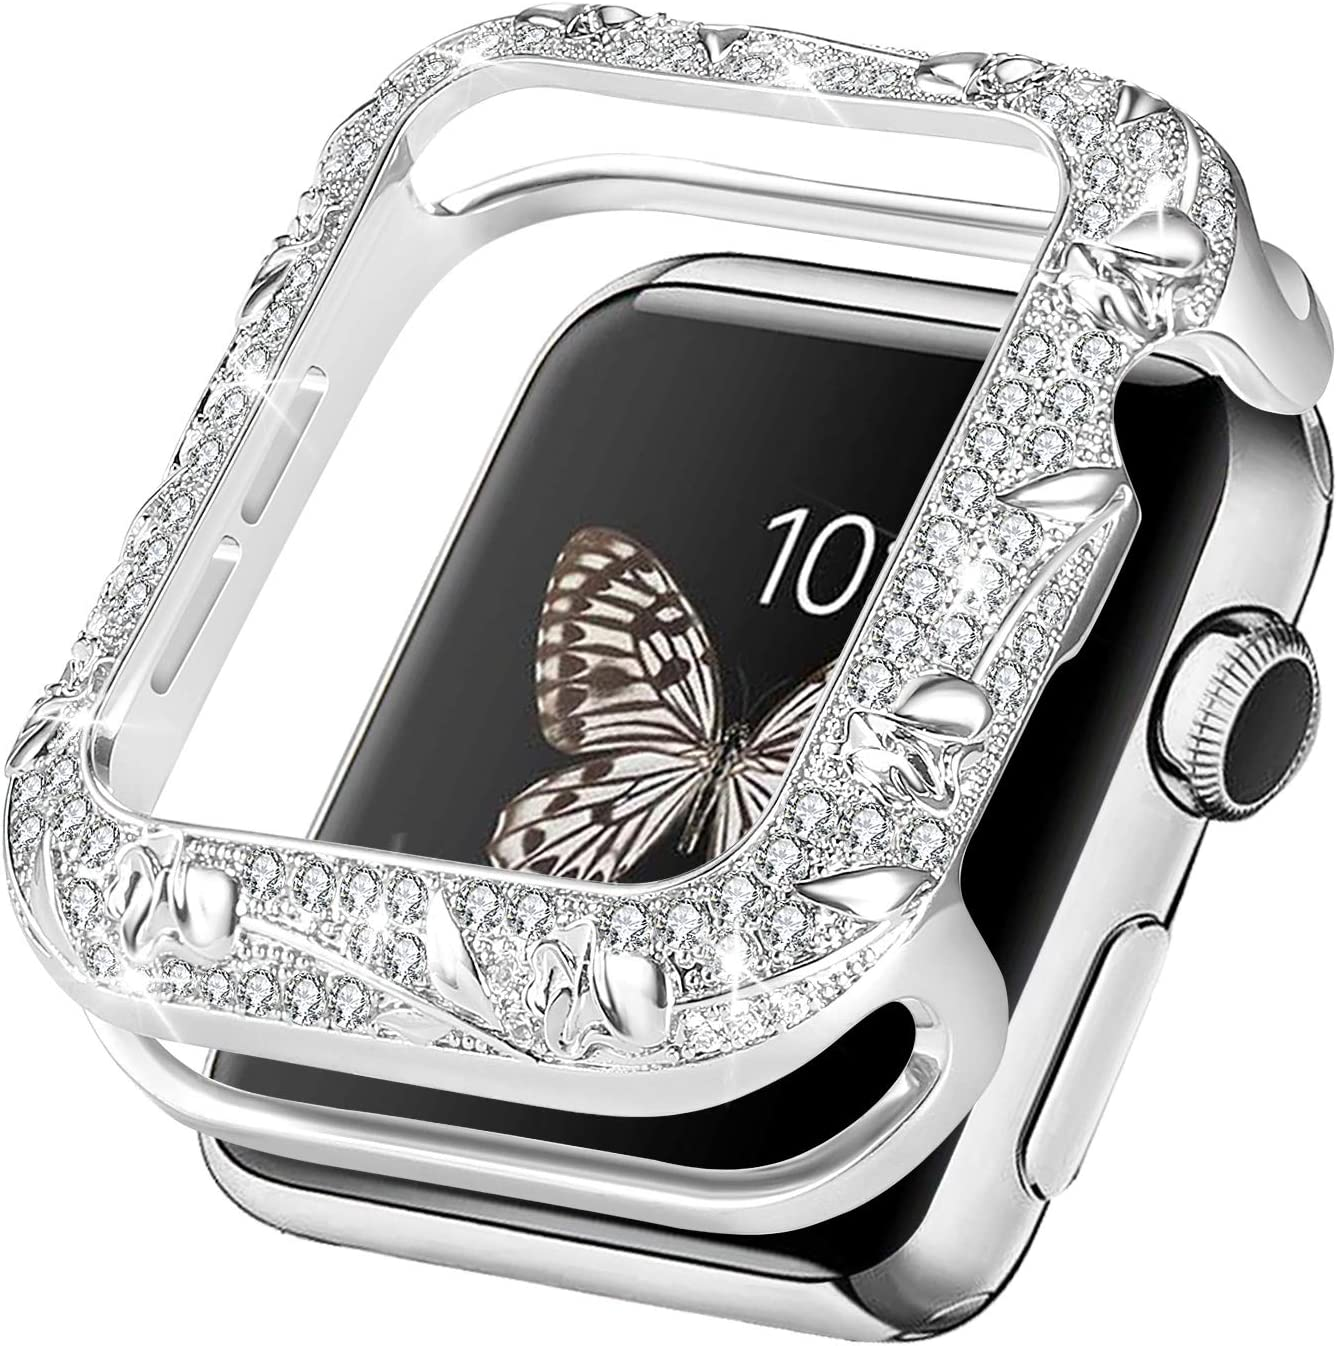 Fohuas bling floral case compatible apple watch 40mm,Luxury rhinestone apple watch Bezel 40mm,Vintage sparkling jewelry cover bumper protector for apple watch series 6 5 4 SE-silver